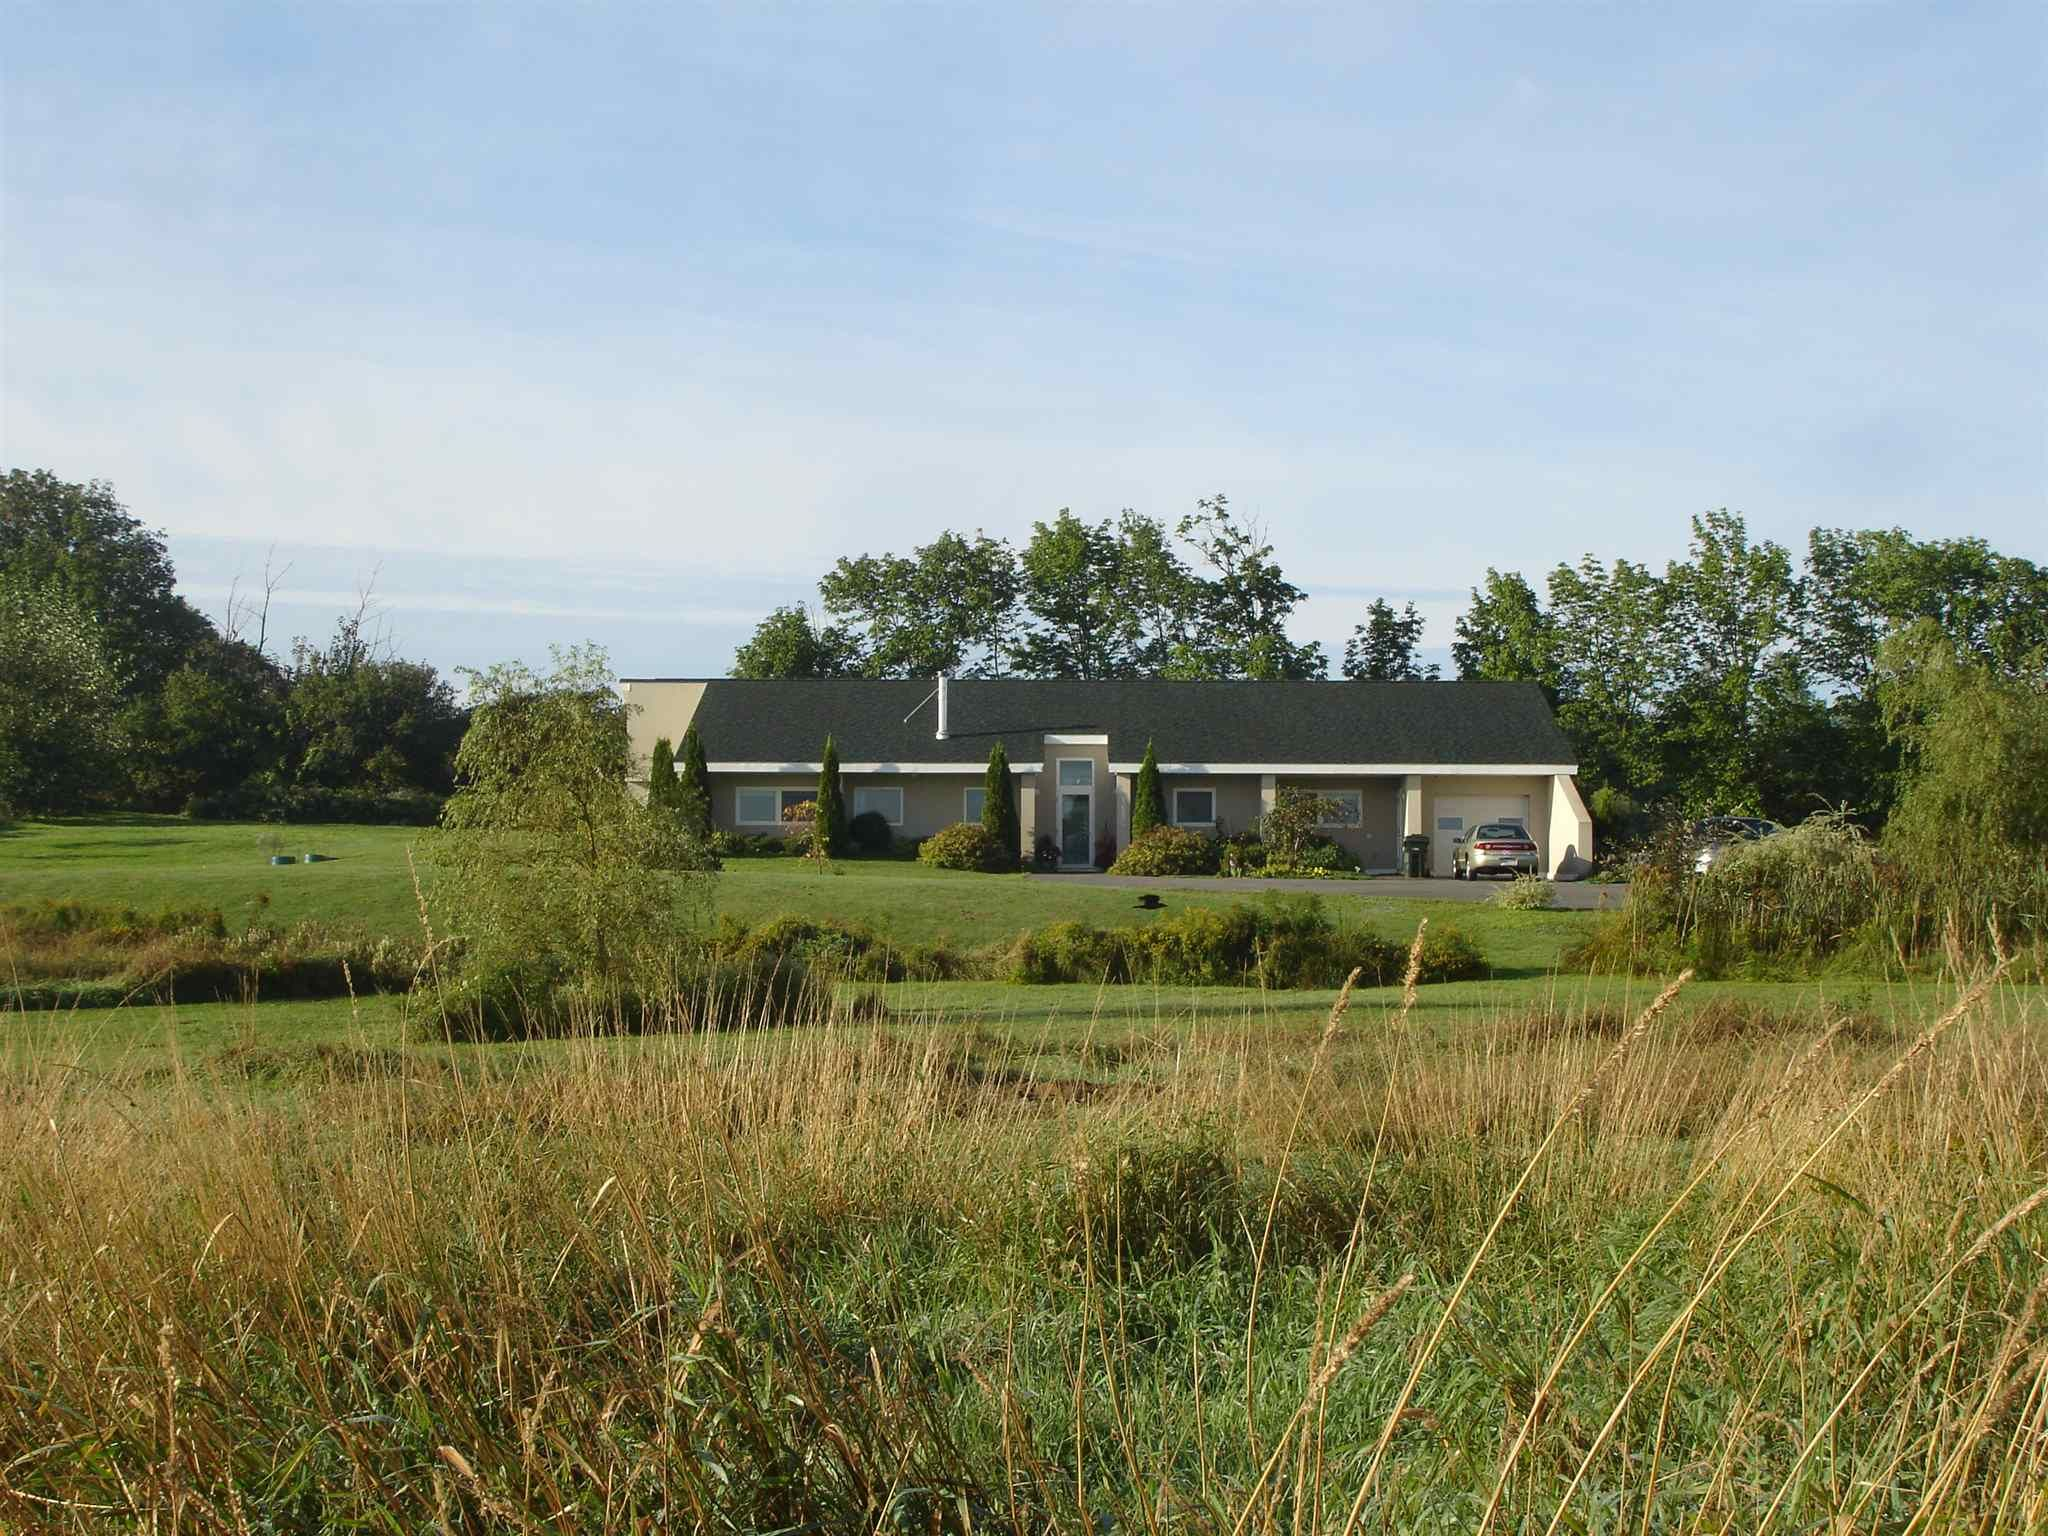 Main Photo: 1652 MAPLE RIDGE Road in Lower Wolfville: 404-Kings County Residential for sale (Annapolis Valley)  : MLS®# 202108834